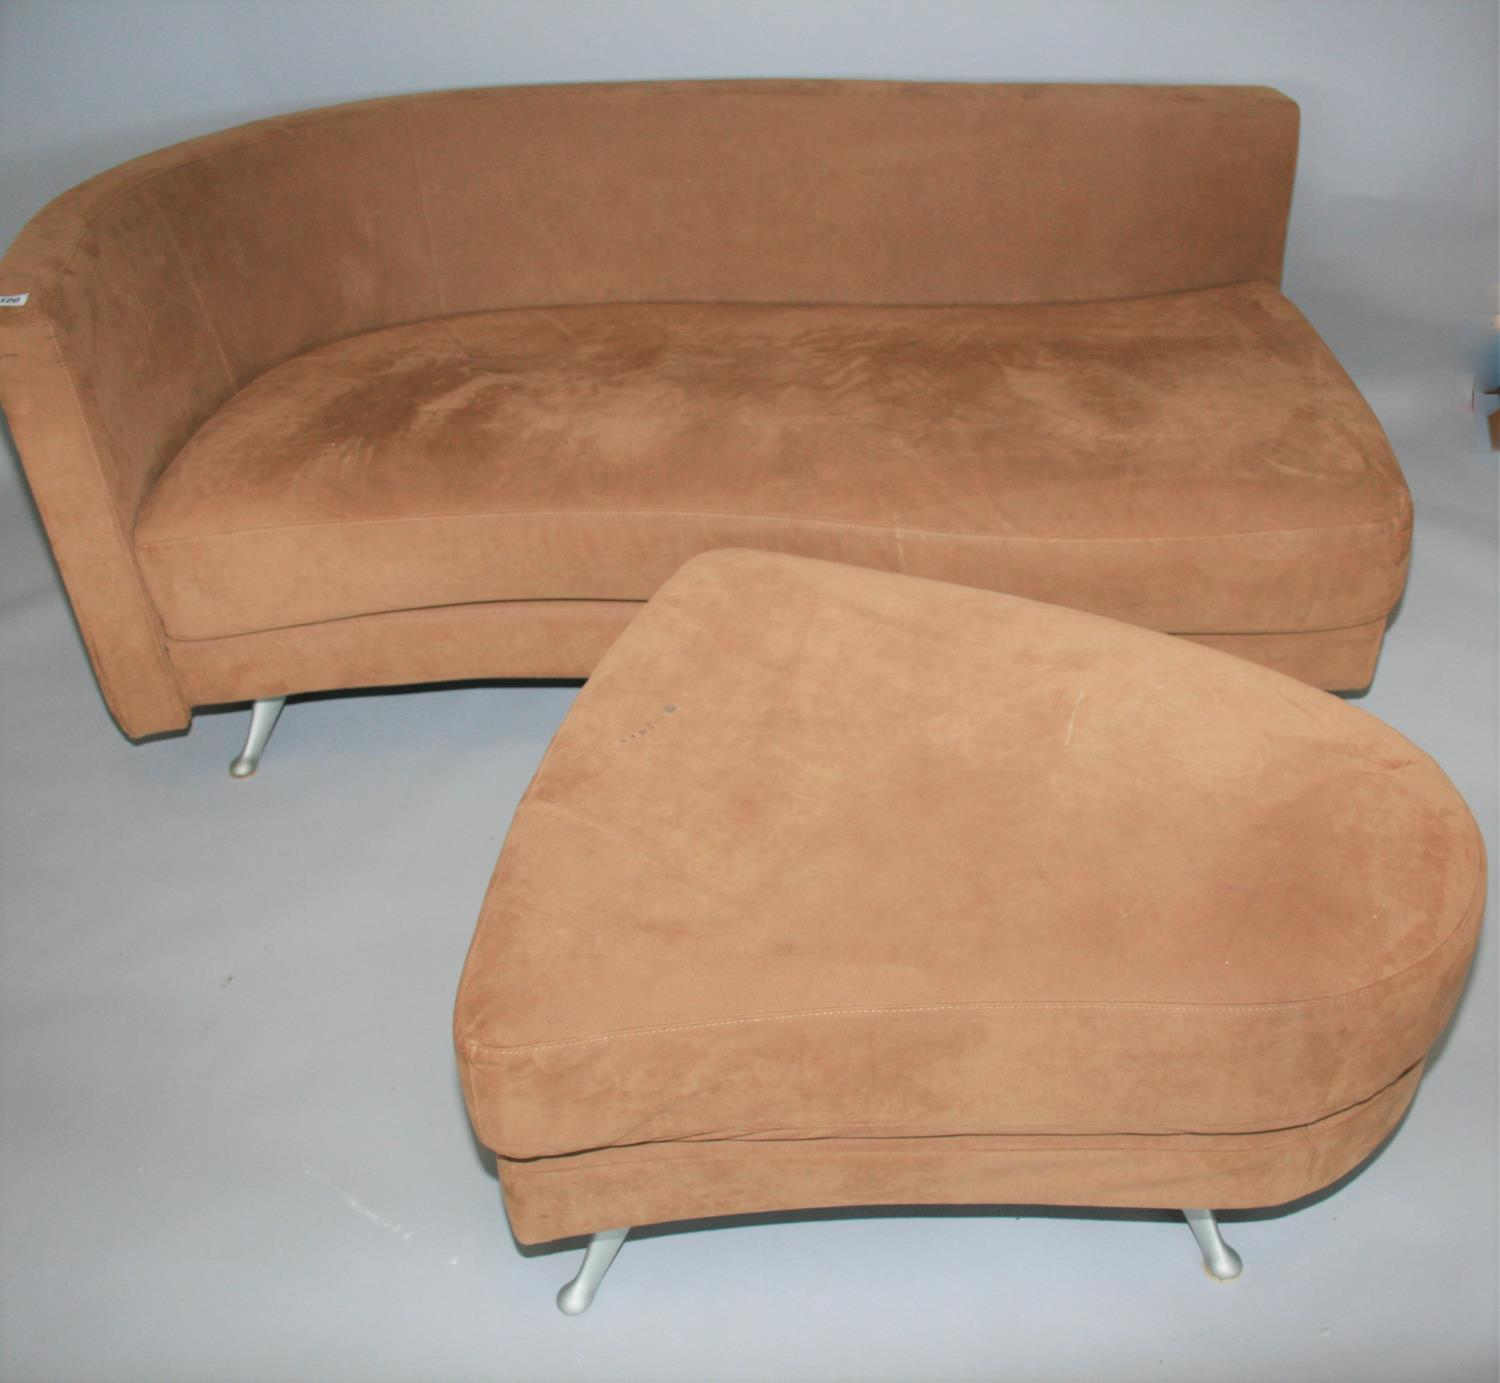 Rolf Benz suede covered sofa and matching foot stool 180 W x 70 H x 85 D